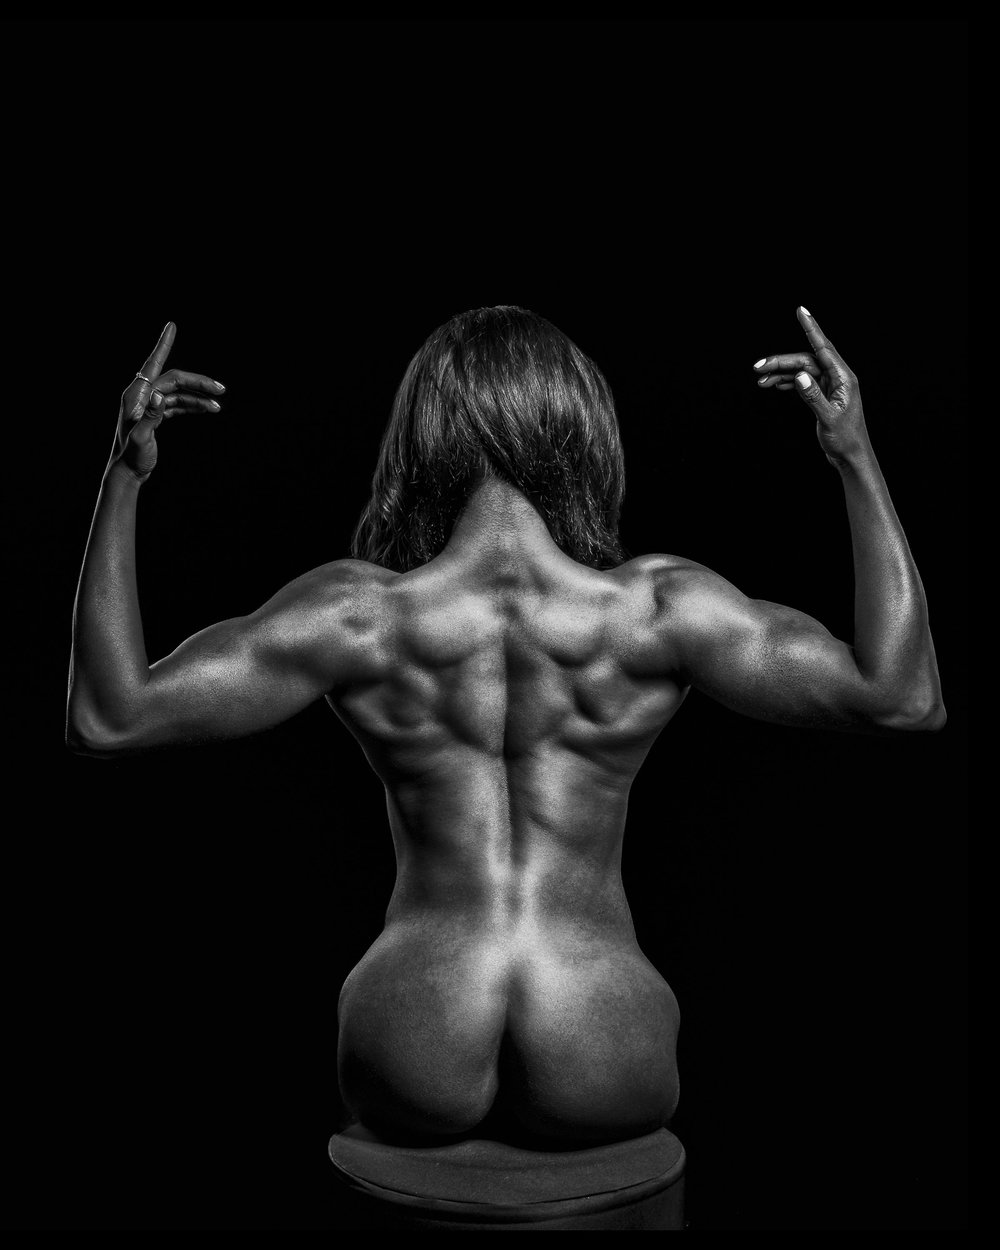 back-image-nude-athlete